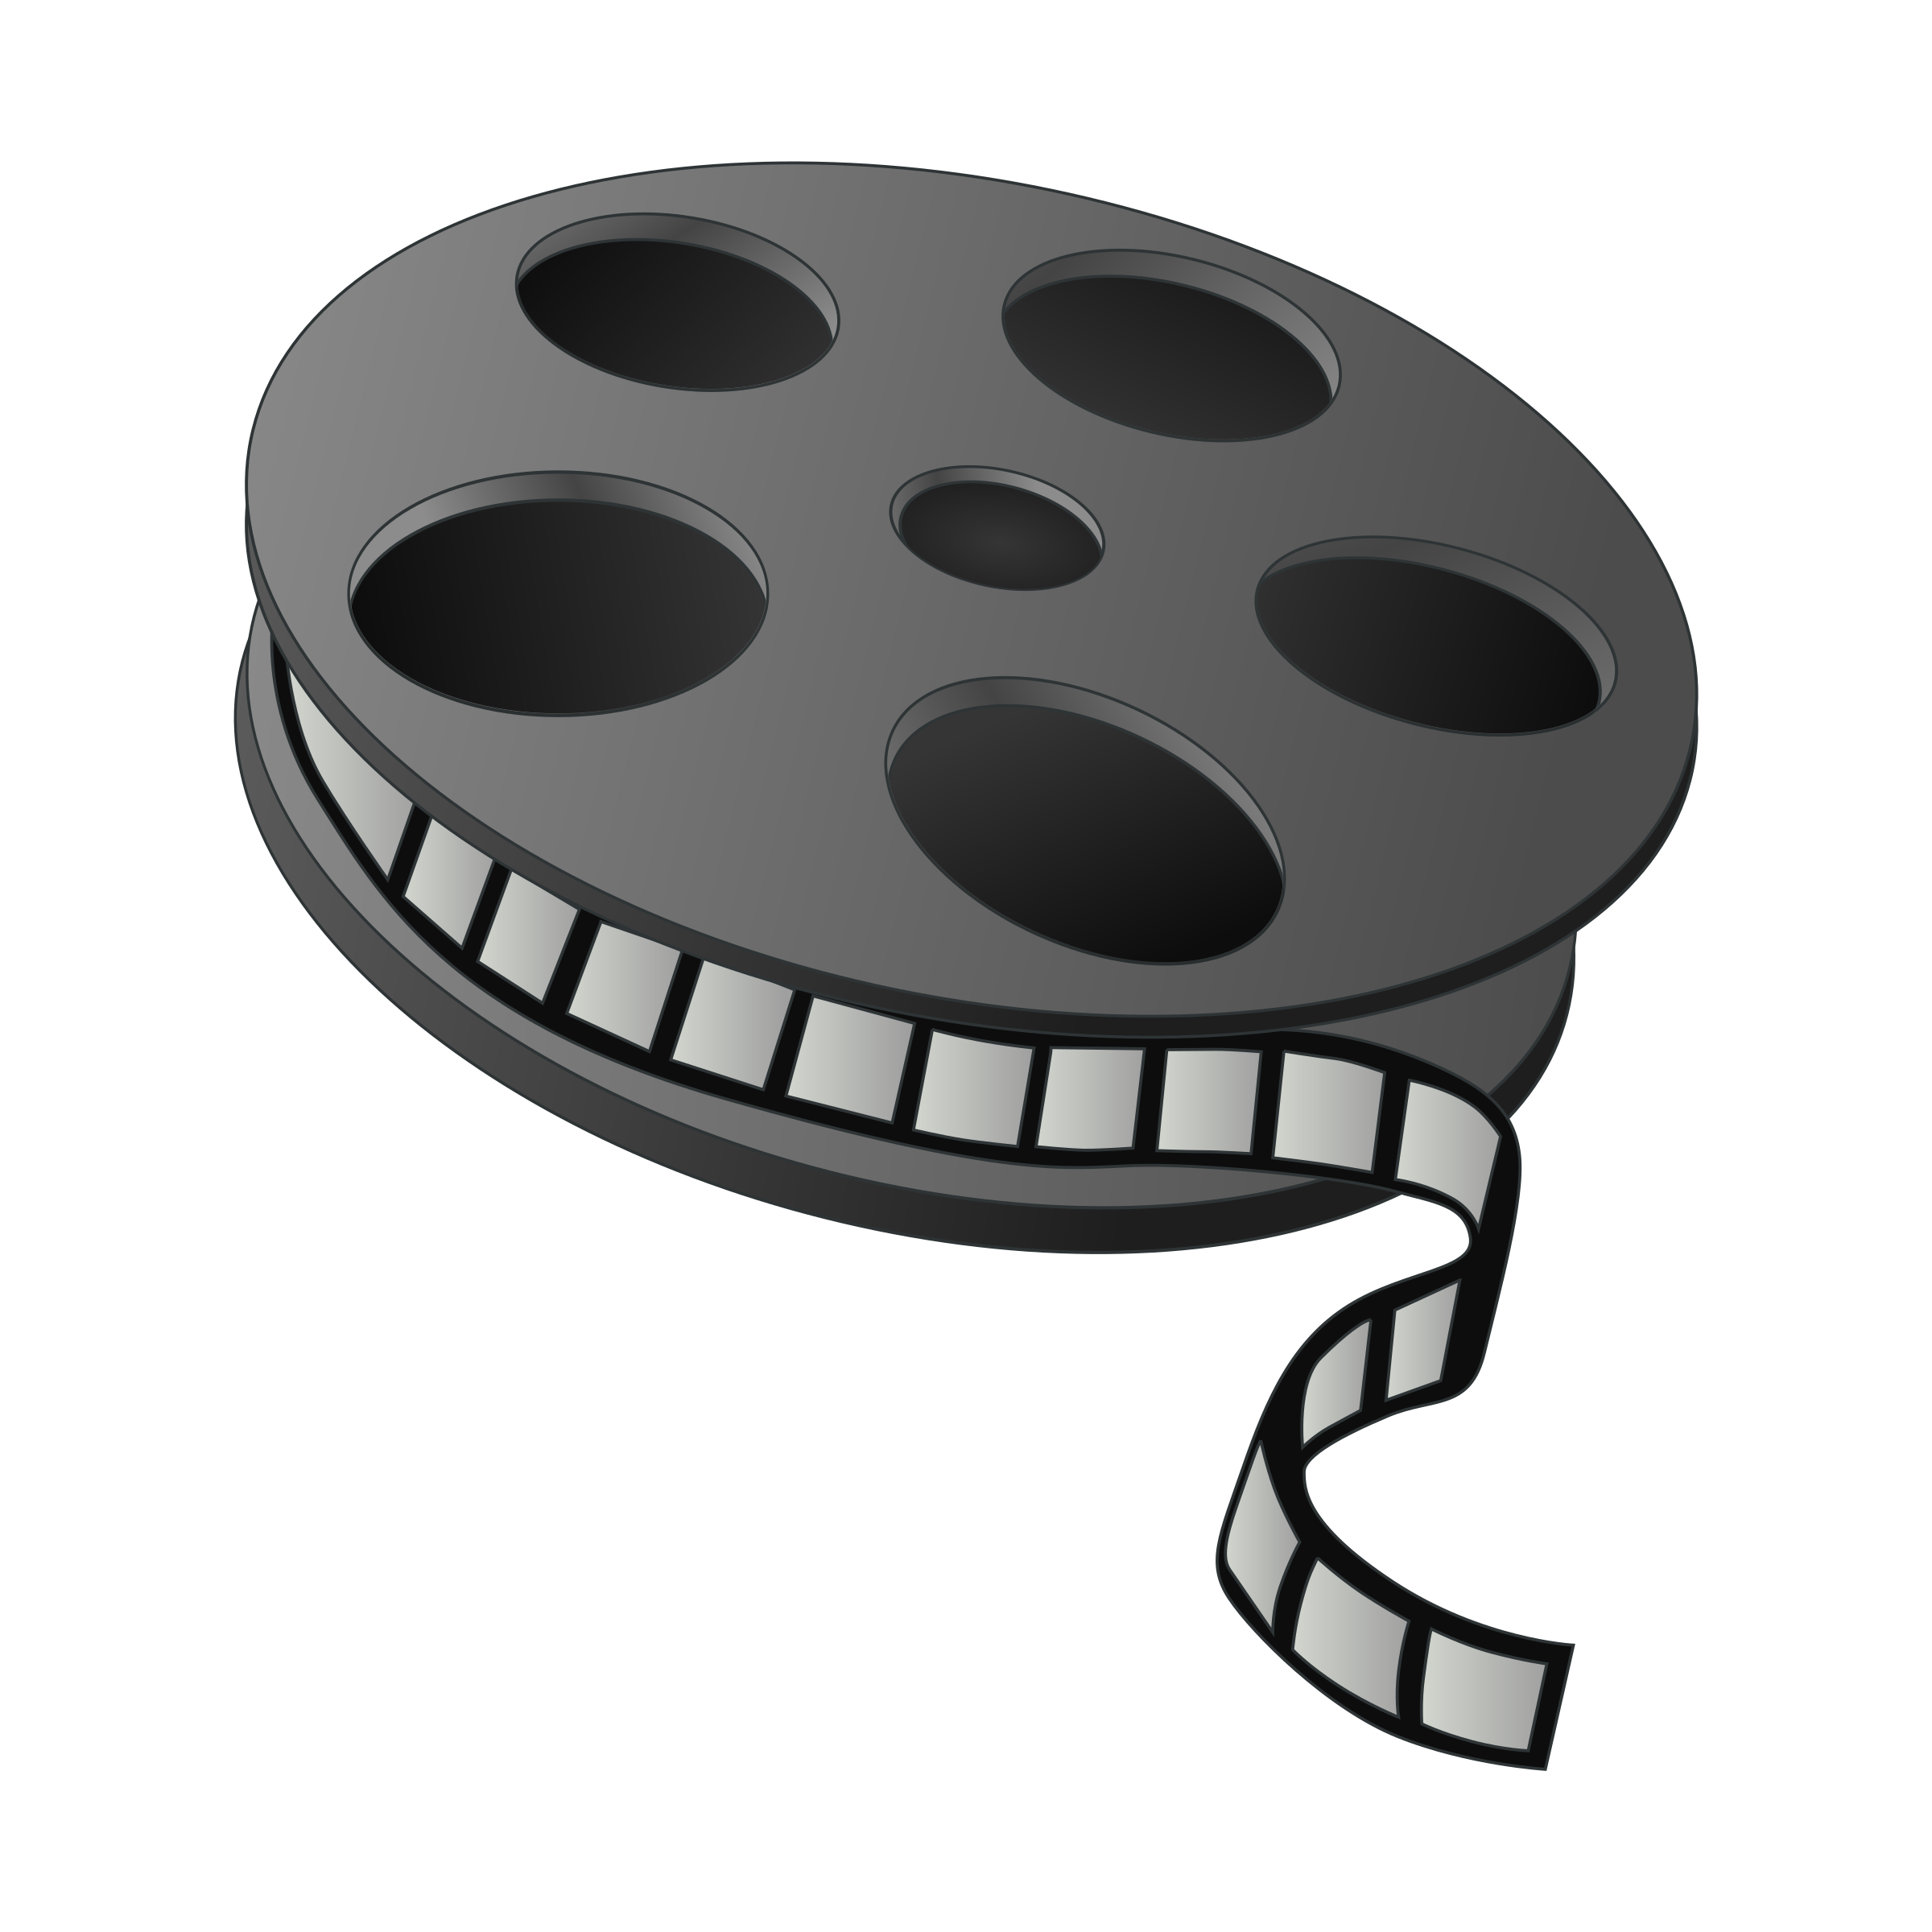 Movie reel by abustany